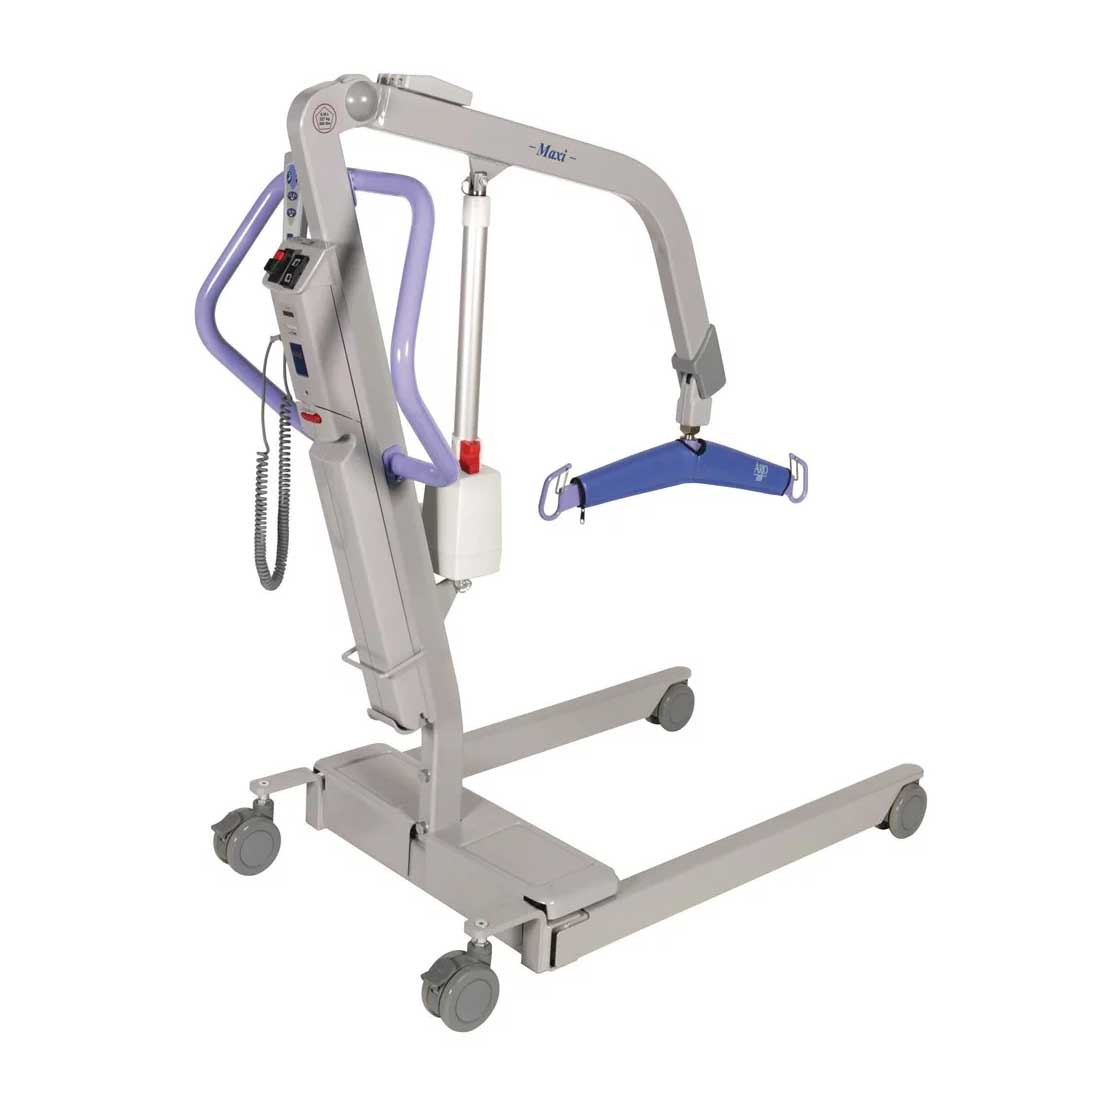 Arjo Maxi 500 power patient lift